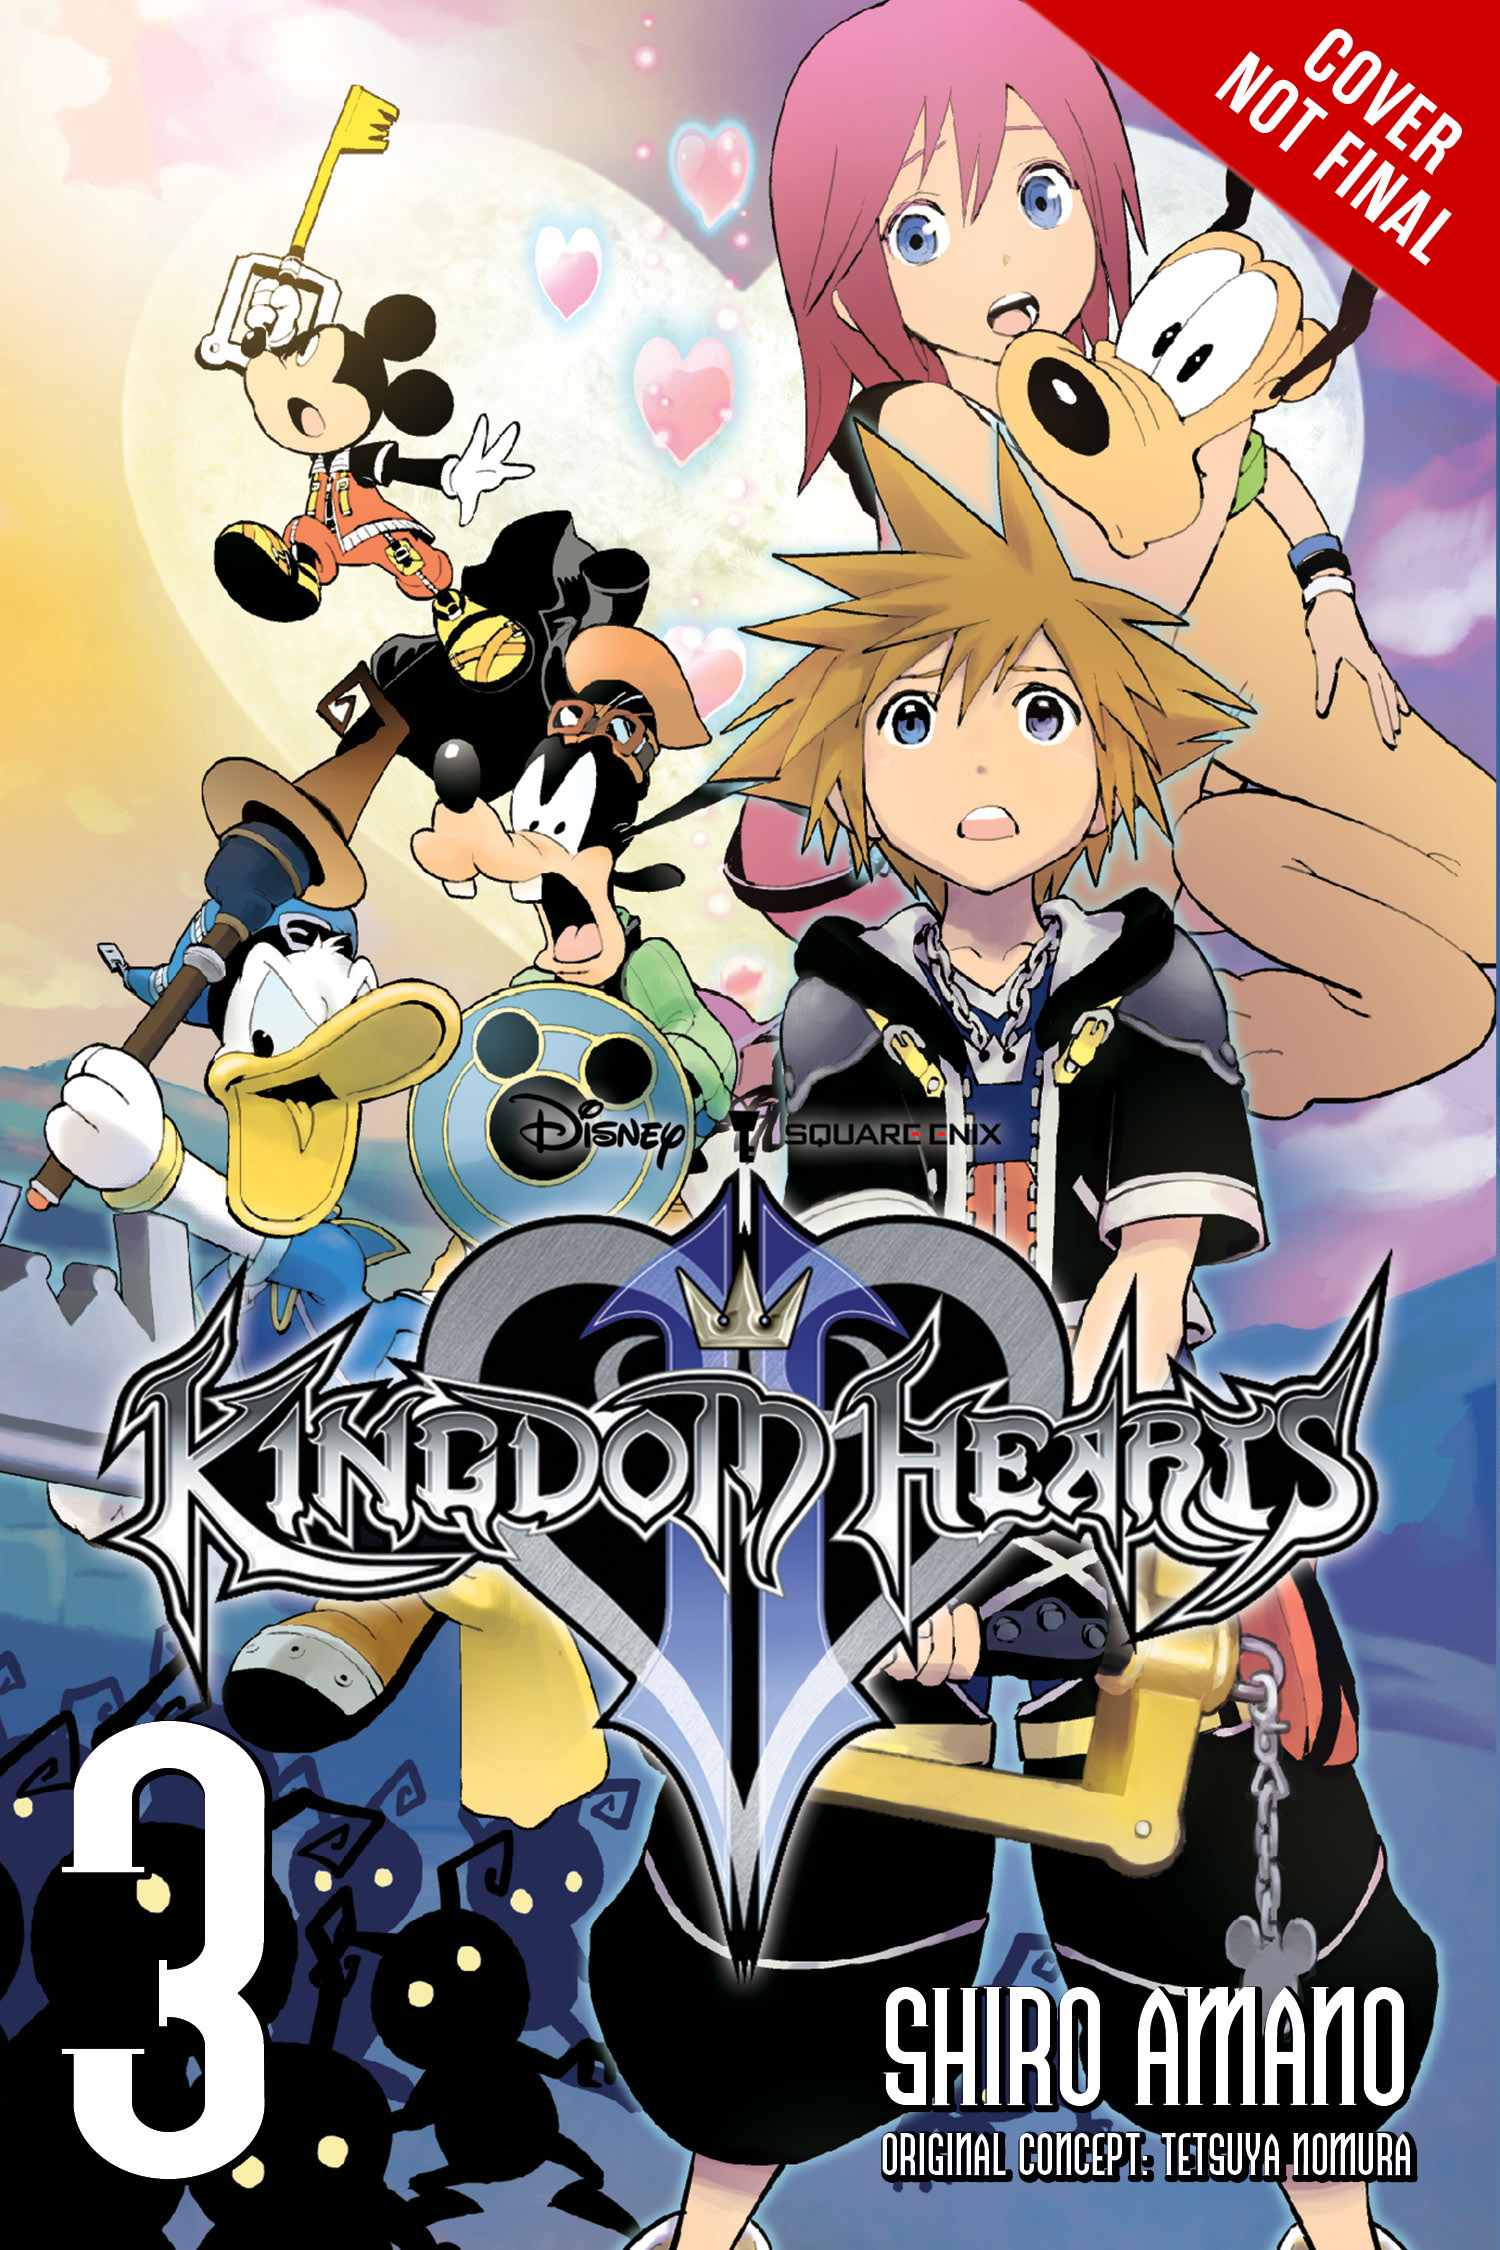 Kingdom Hearts 358 2 Days Vol 4 5 Kingdom Hearts II Vol 3 Manga Release Dates 3952 furthermore 744av besides Rwby Creative Team Talks Volume 2 Finale Creative Process And Volume 3 389631 moreover Review Star Wars The Force Awakens 1 besides Rtx Recap Rwby Hot Topic Merchandise Revealed. on rwby vol 3 dvd release